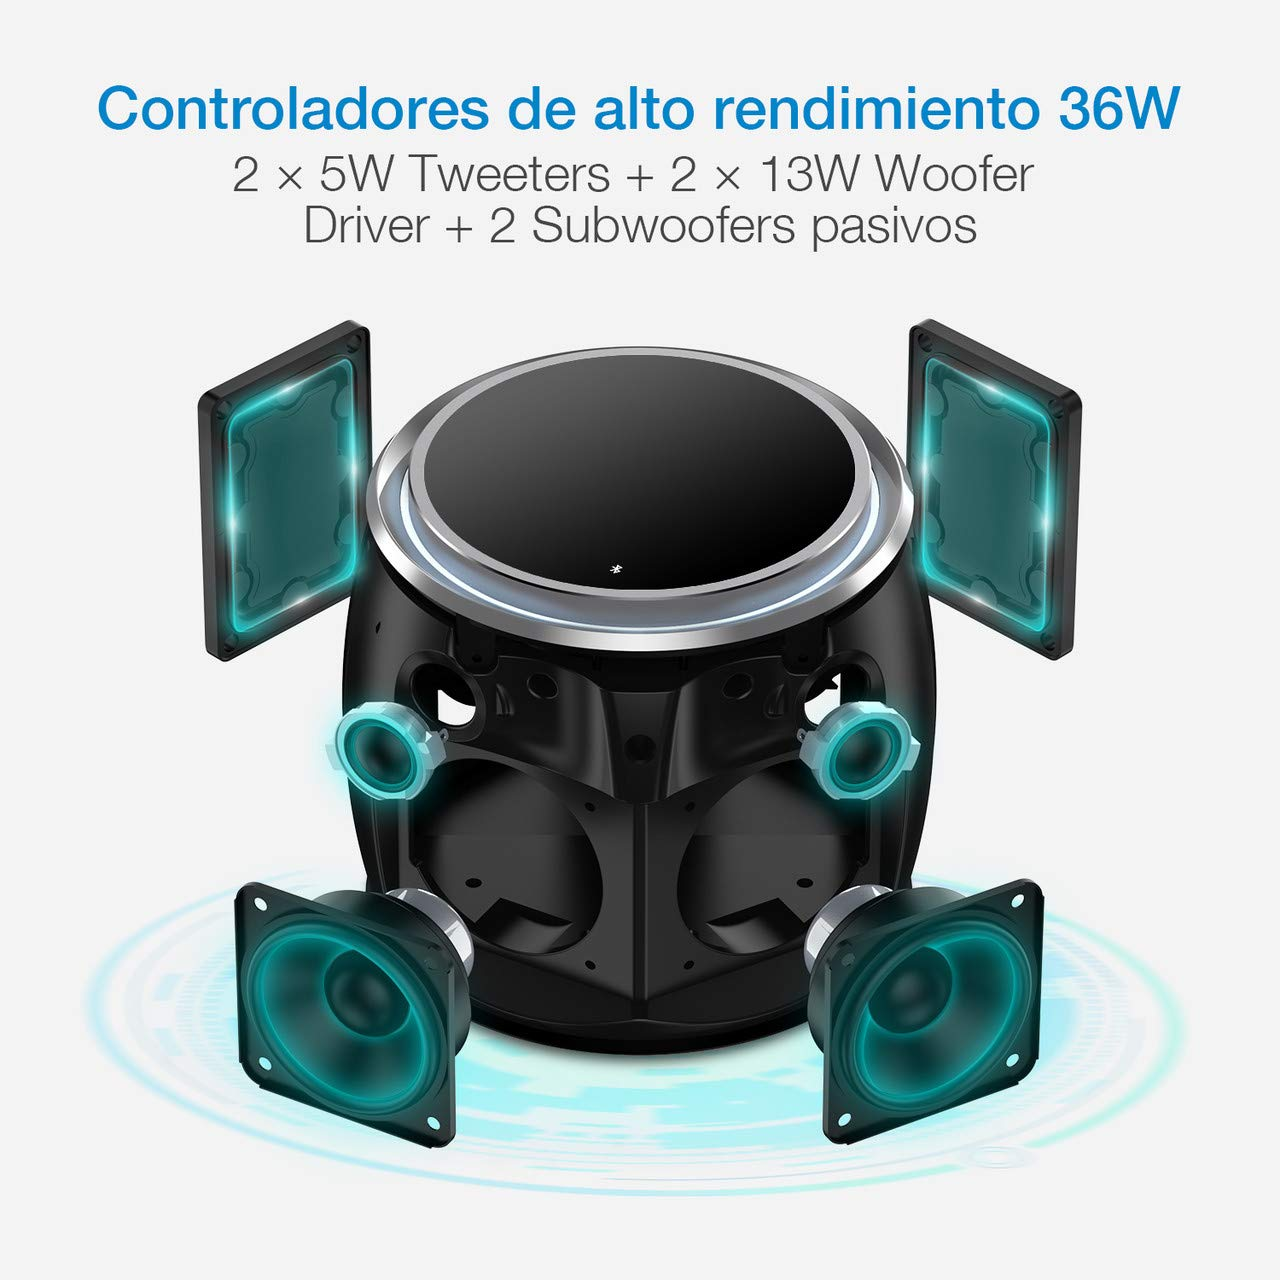 POWERADD DEE-G Altavoz Inalámbrico, Bluetooth 4.2, con 13W*2 y 5W*2 Altavoces,Compatible con los Dispositivos de Bluetooth, con Aux Cable.